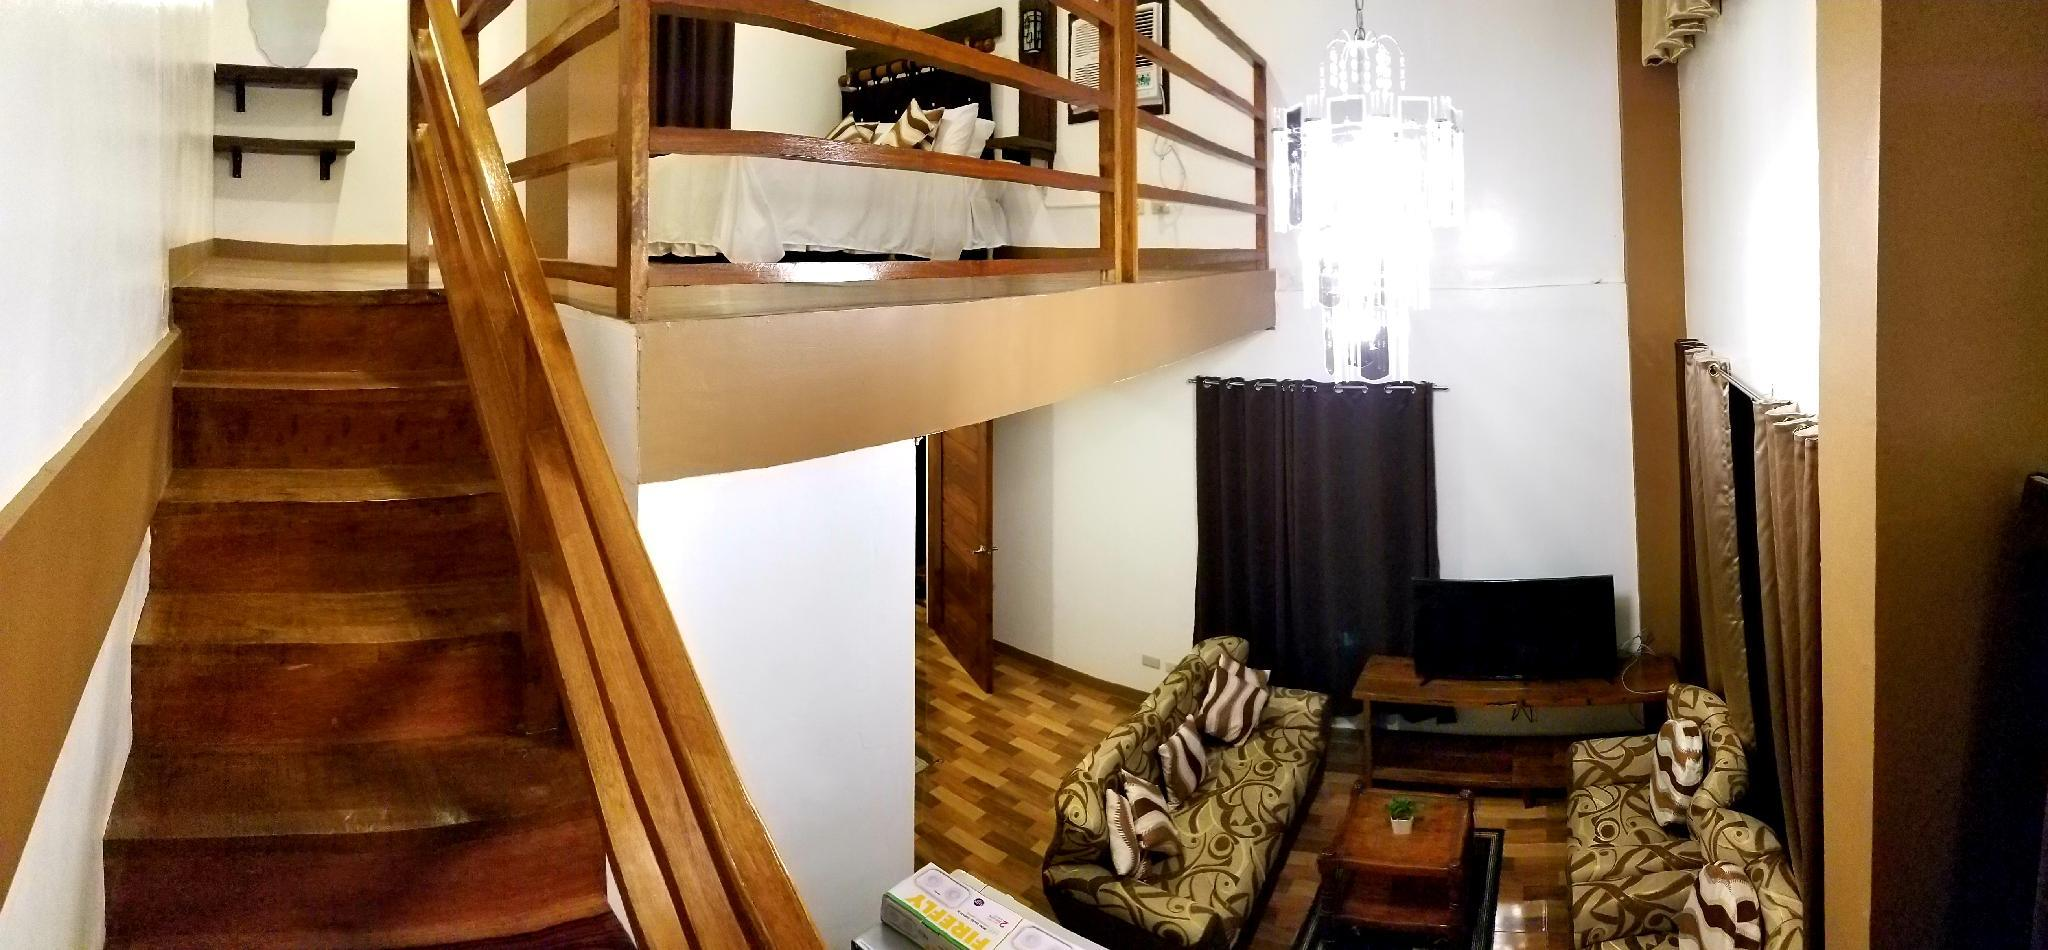 RLoft Suites Tagaytay Room For Rent Hotel Bed 2A.